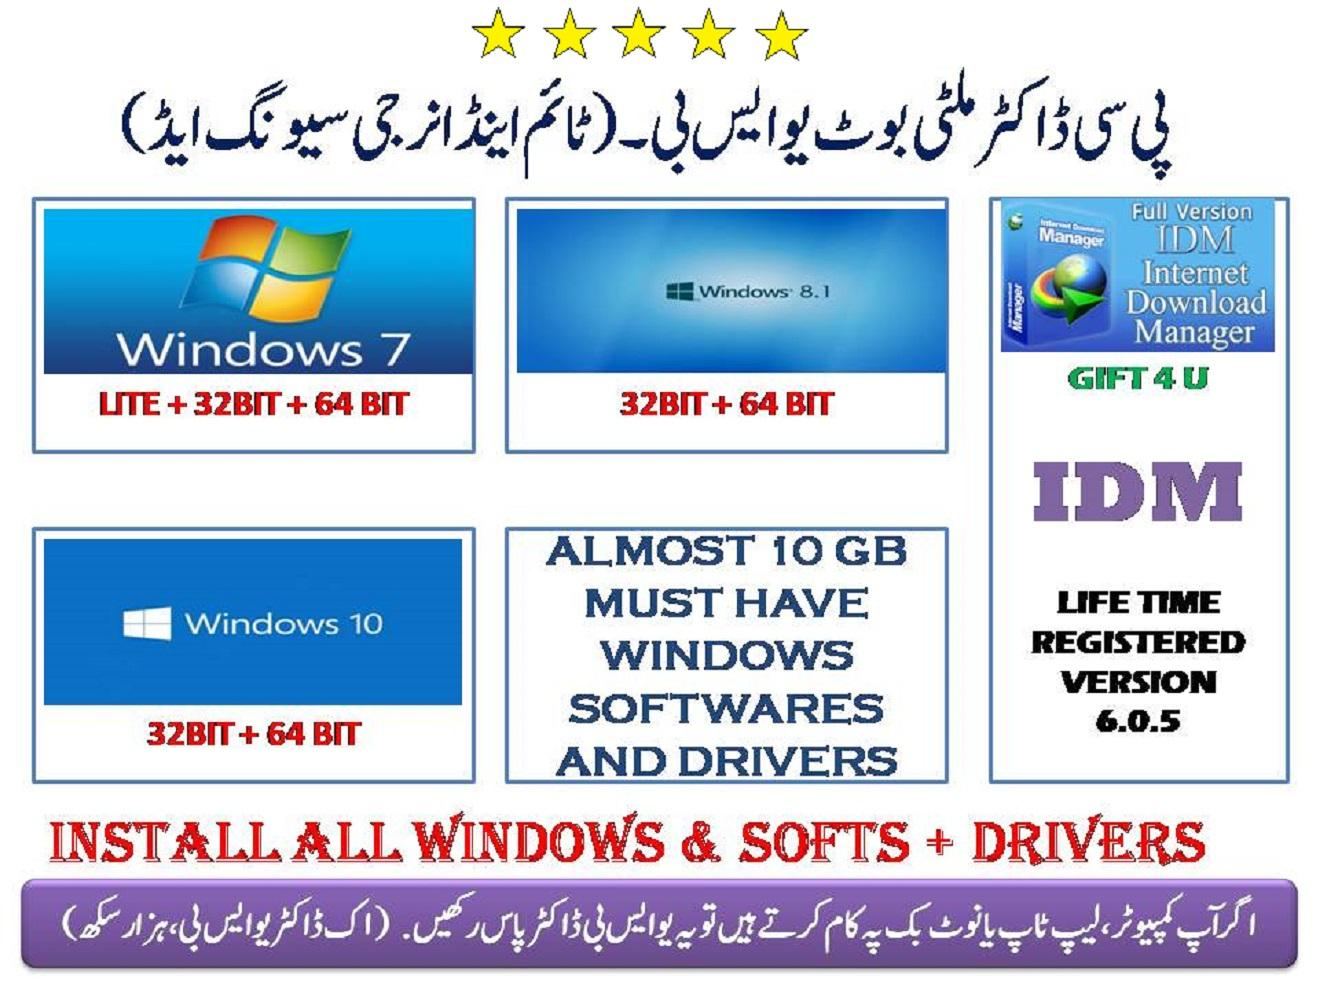 PC DOCTOR MULTIBOOT TIME SAVING 32GB USB TO INSTALL WINDOWS 7+8 1+10 ALL  32+64 BIT VERSIONS PLUS ALMOST 10 GB MUST HAVE SOFTWARE +DRIVERS